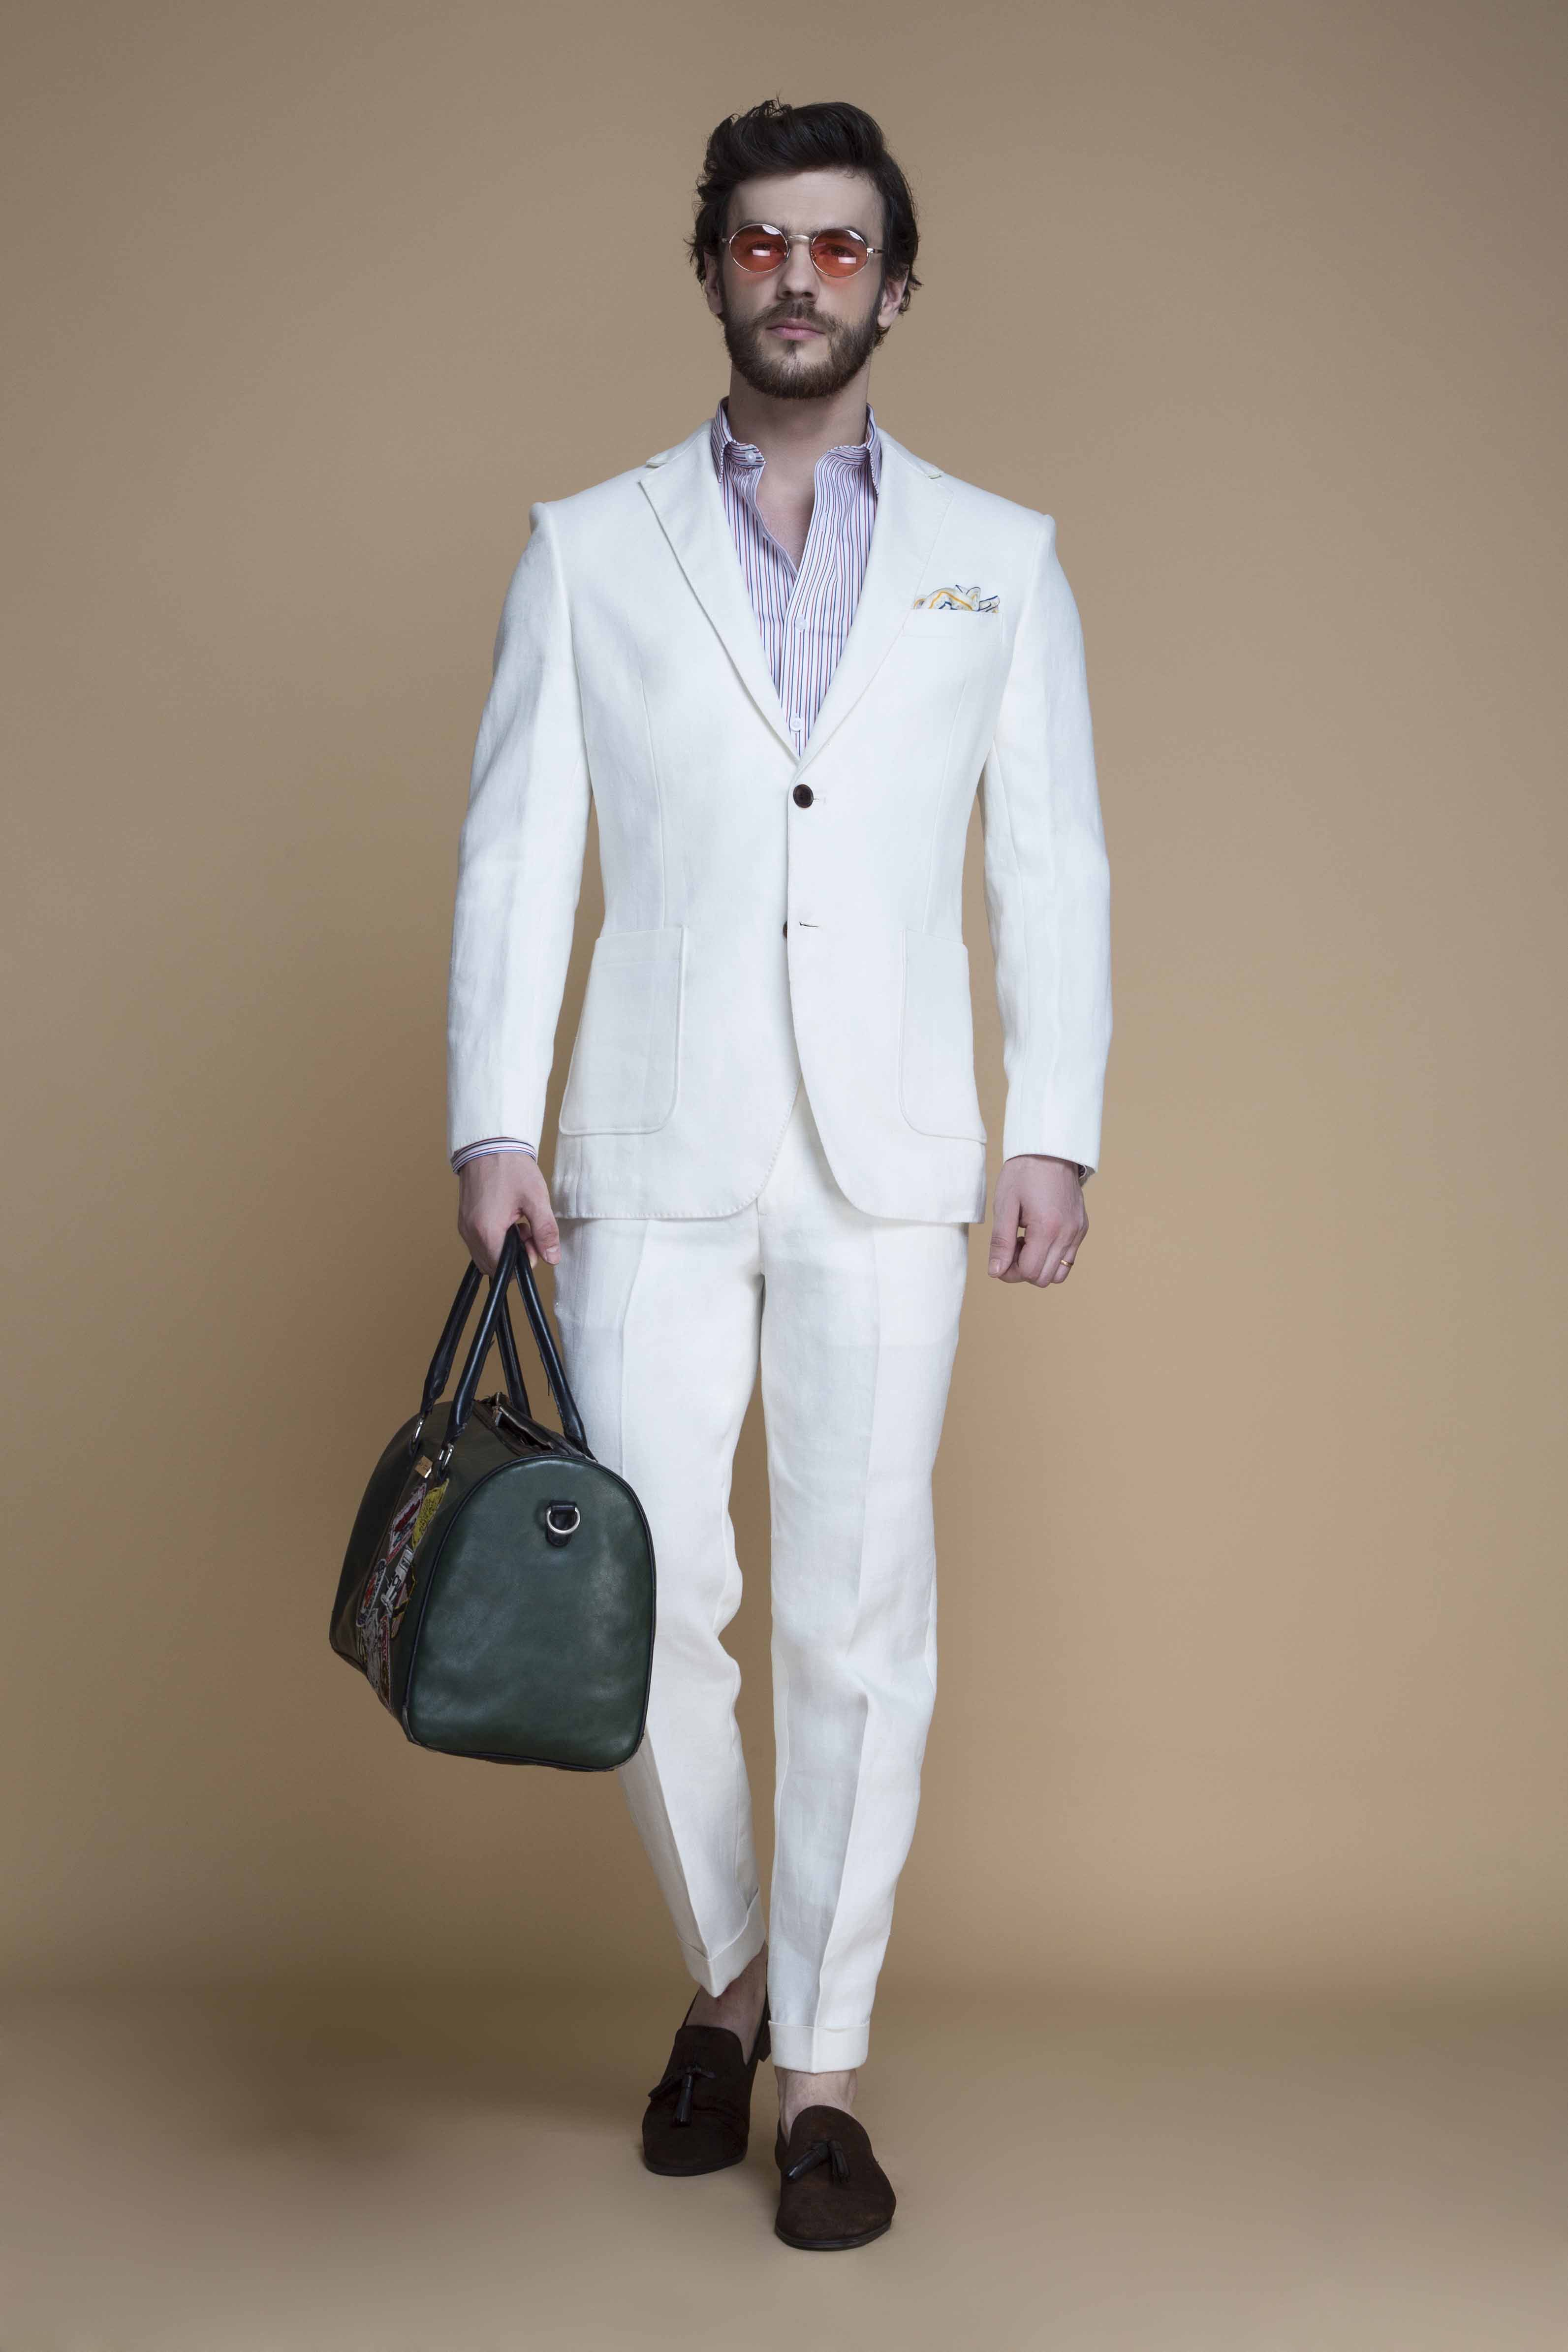 Cardiff Off White Linen Suit Custom Made By A I Hangrr